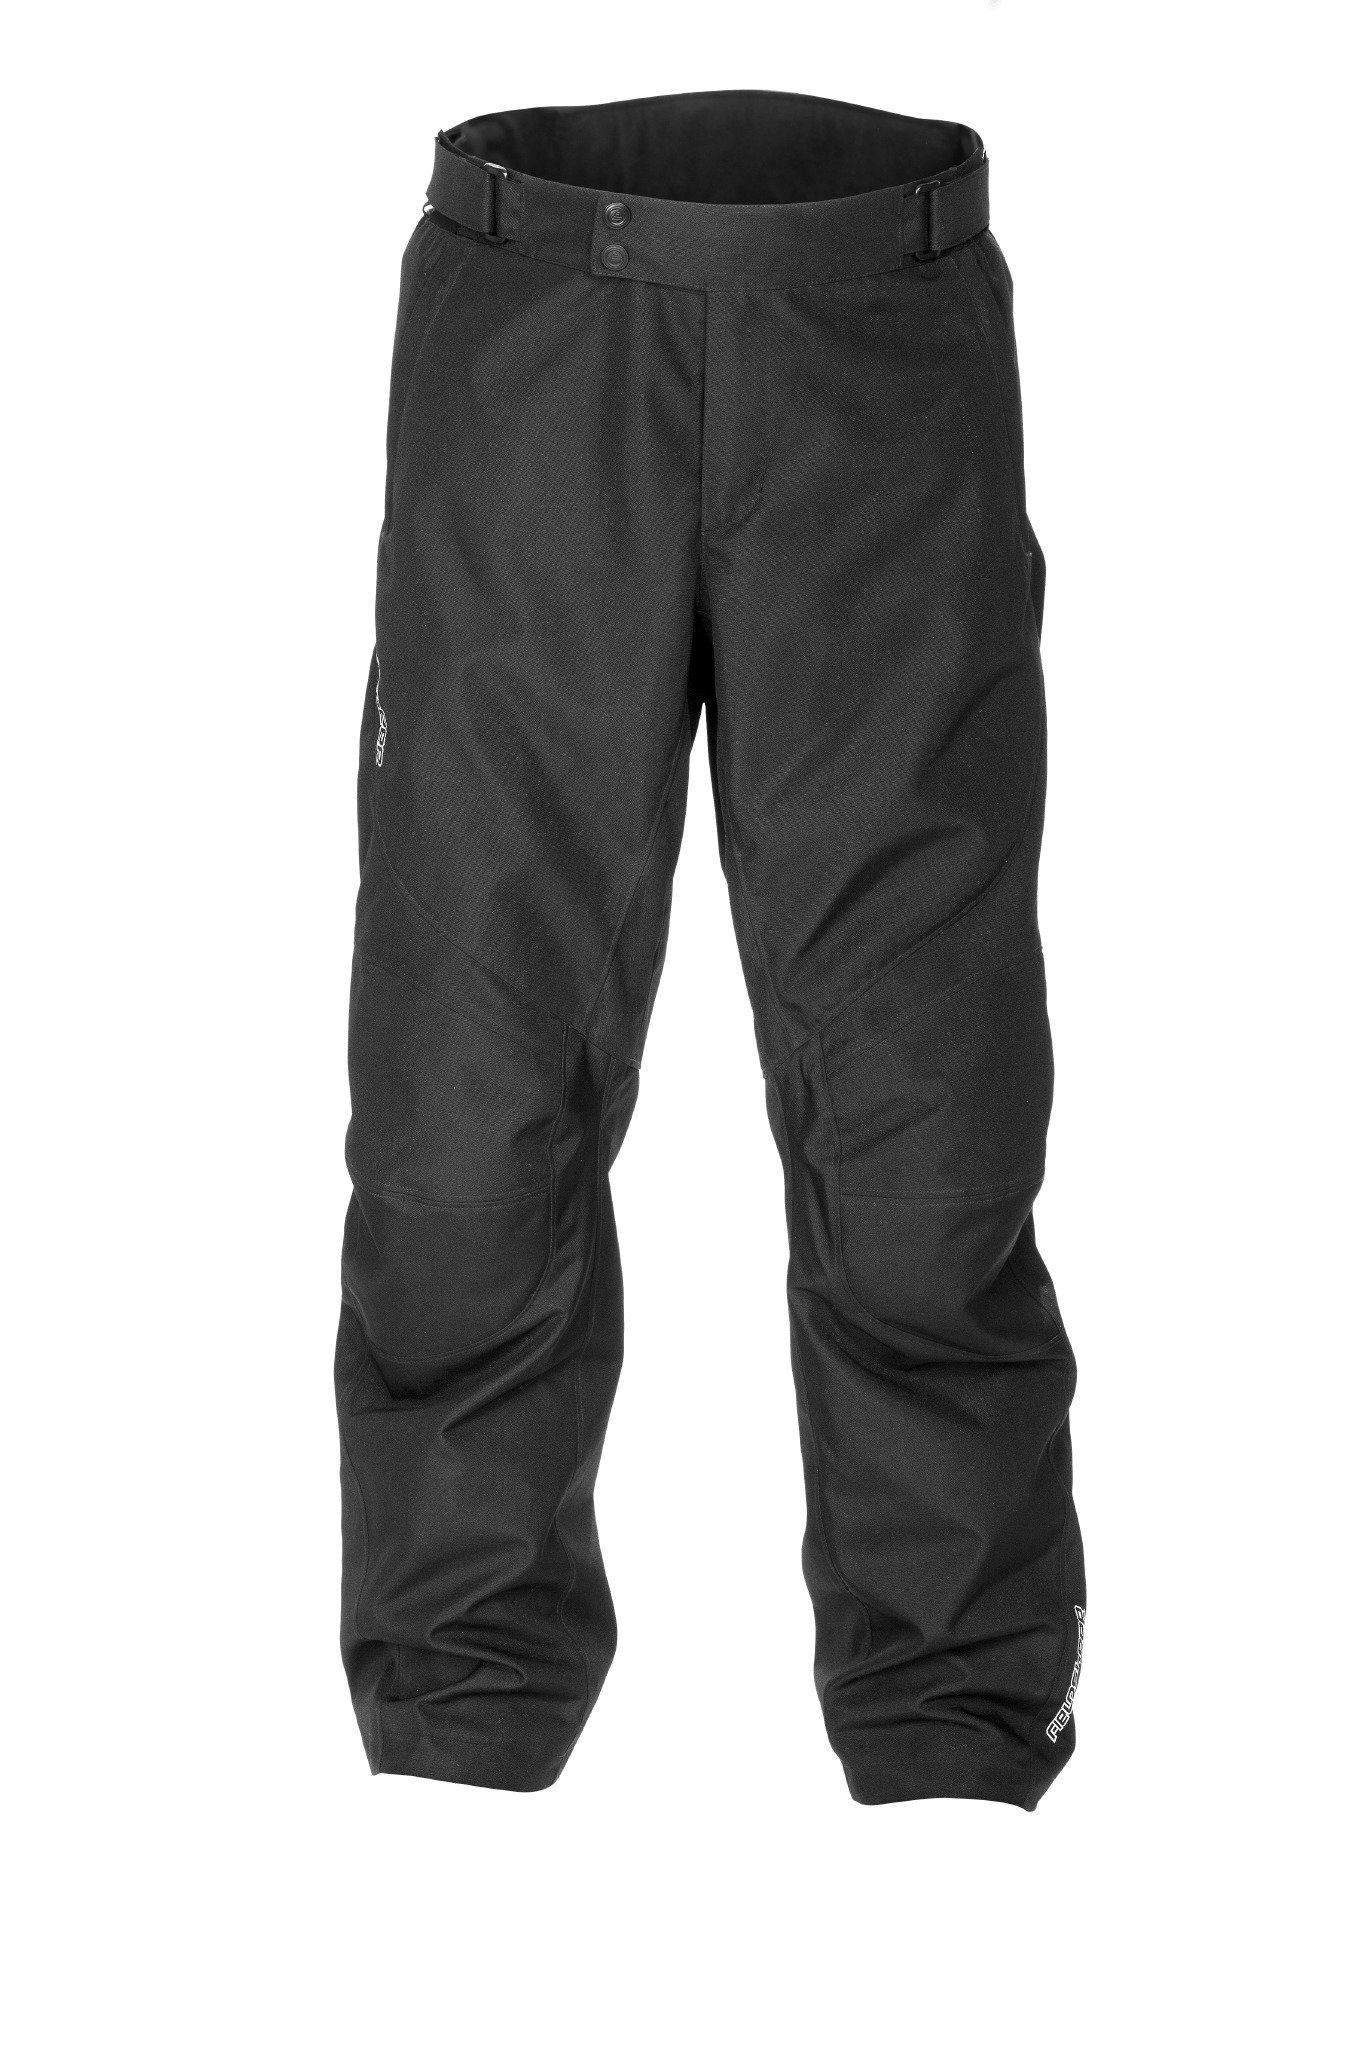 Fieldsheer Men's McKinney Pant (Black, Medium) by Fieldsheer